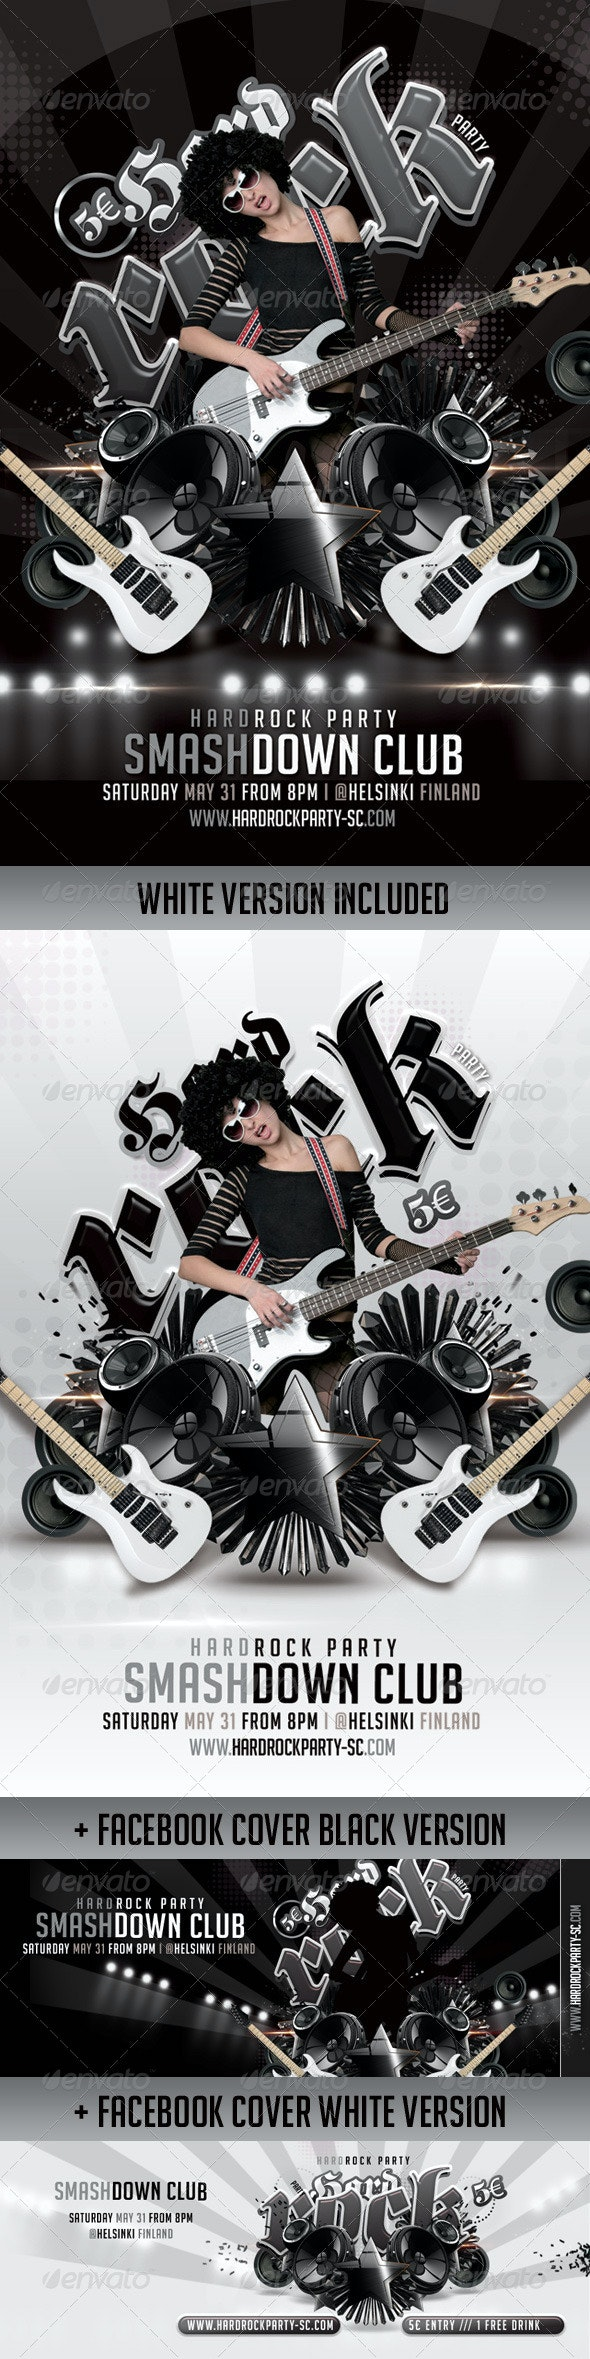 Bundle Flyers+ FB Covers Hard Rock Party In Club - Events Flyers